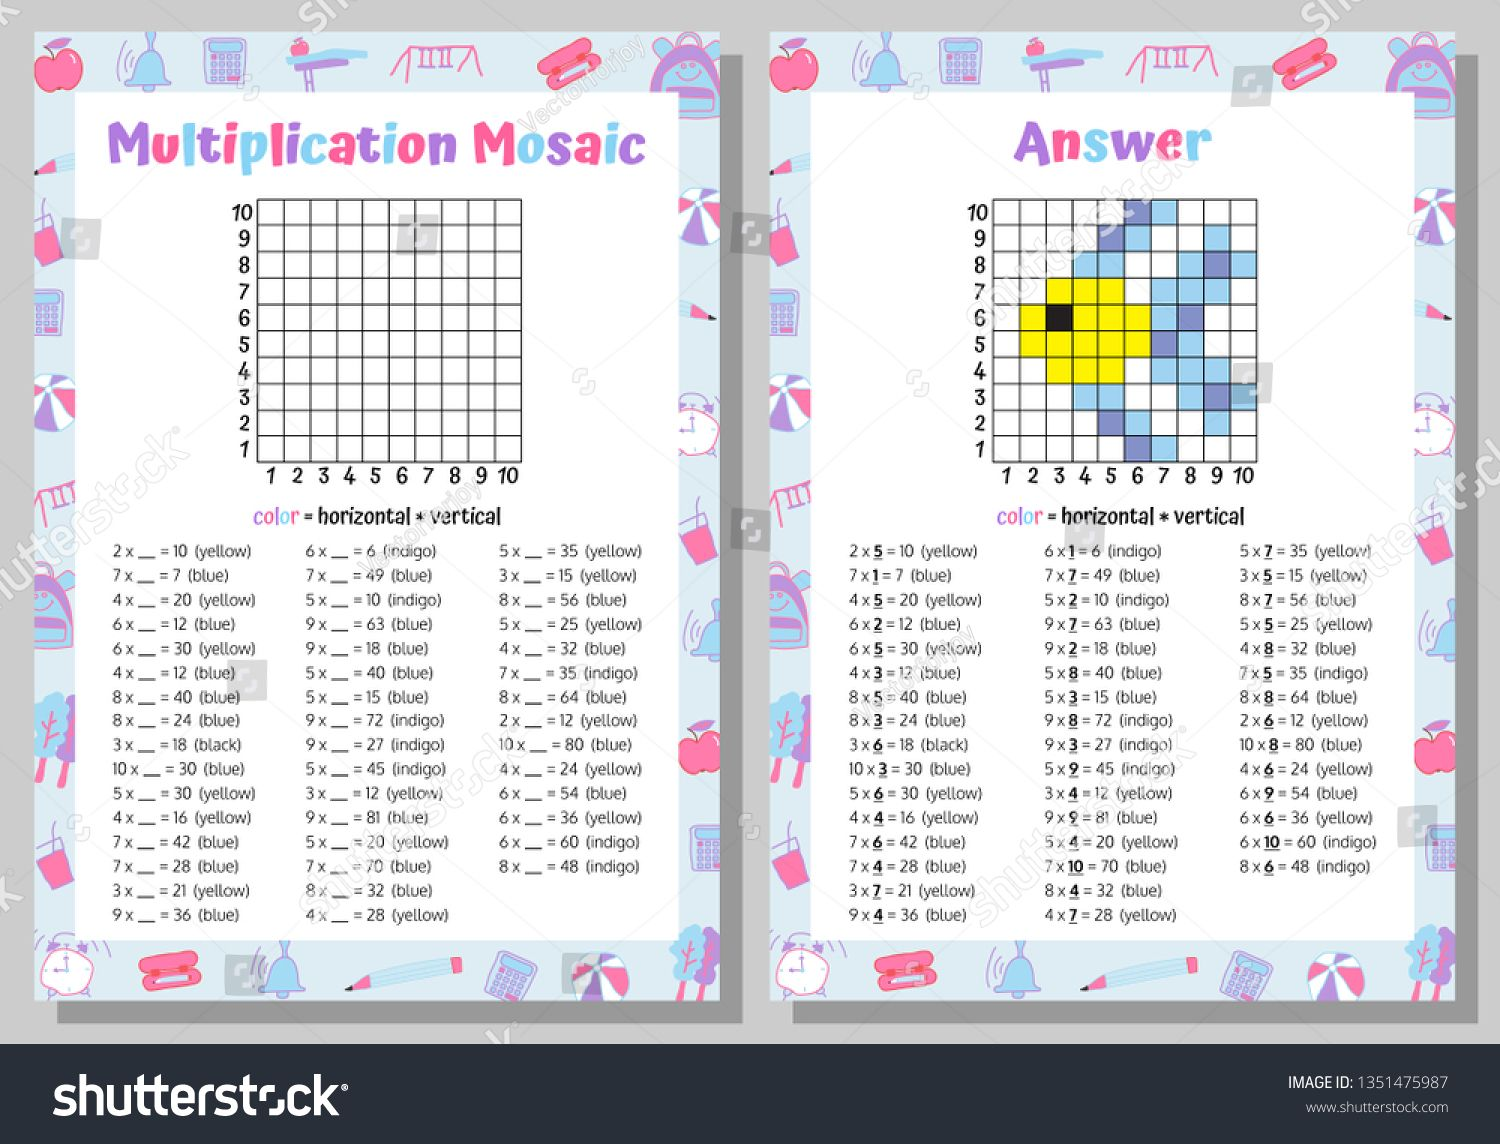 Multiplication Mosaic Math Puzzle Worksheet Educational